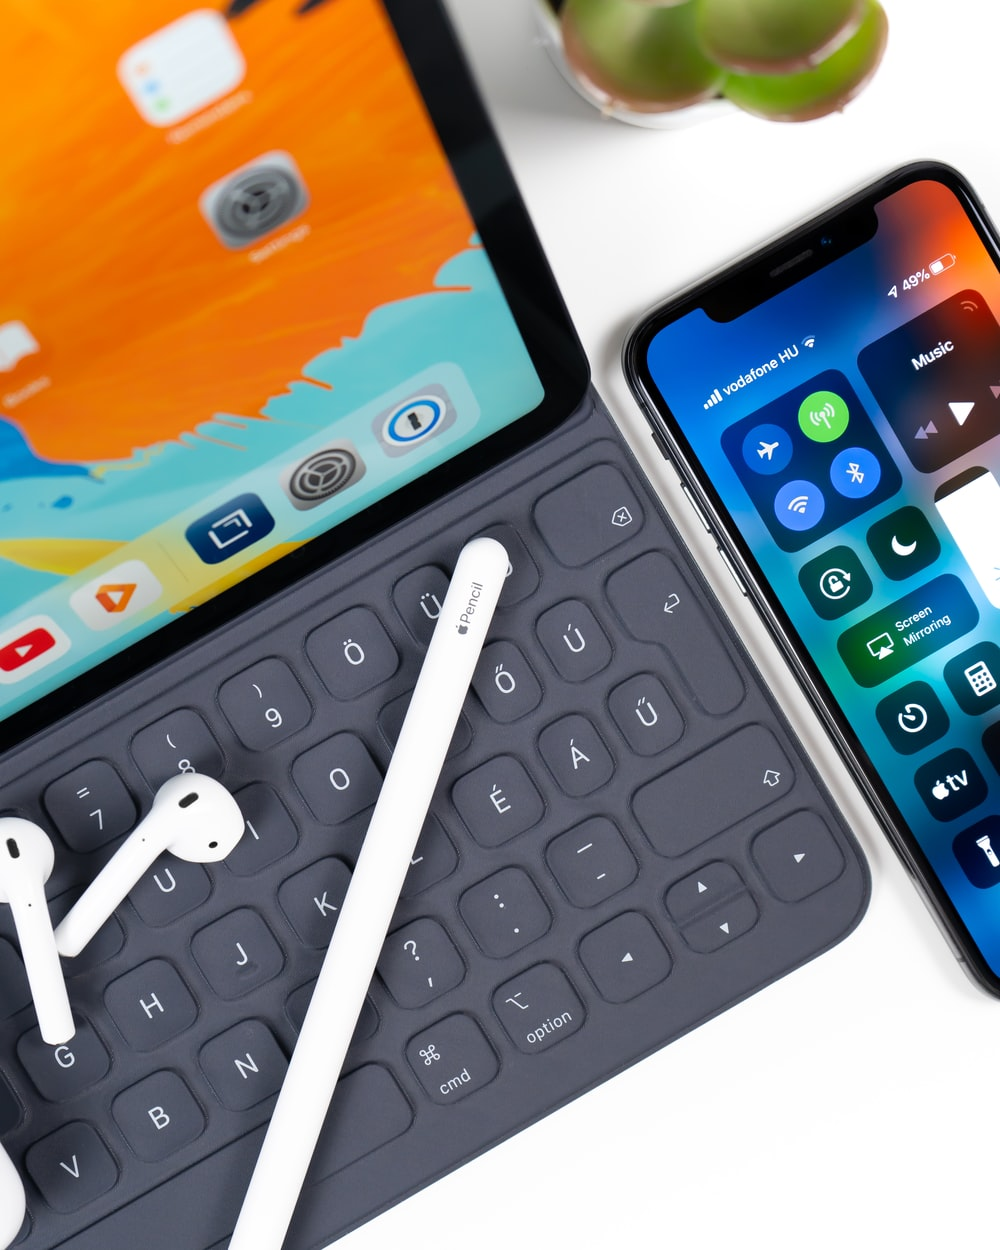 iPad with keyboard, white stylus, white AirPods; and an iphone on table